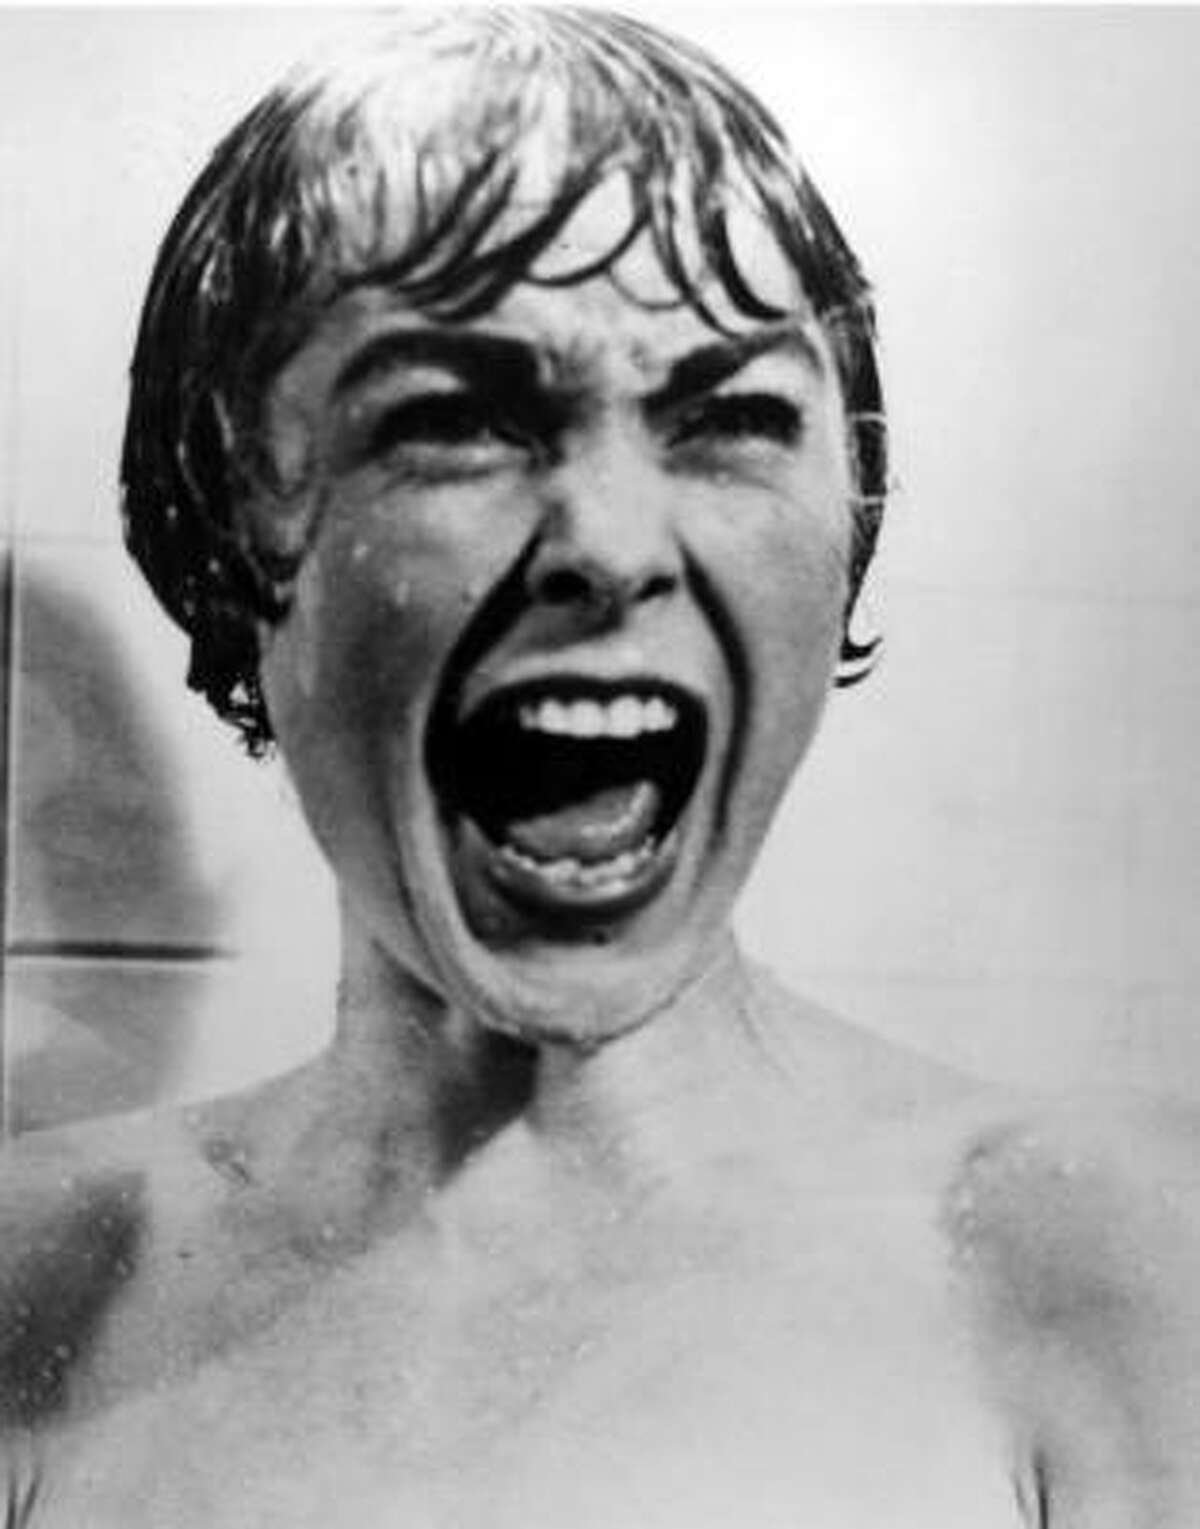 Janet Leigh meets her fiance in Psycho. Hitchcock's killing of the female lead less than halfway through the film stunned audiences.